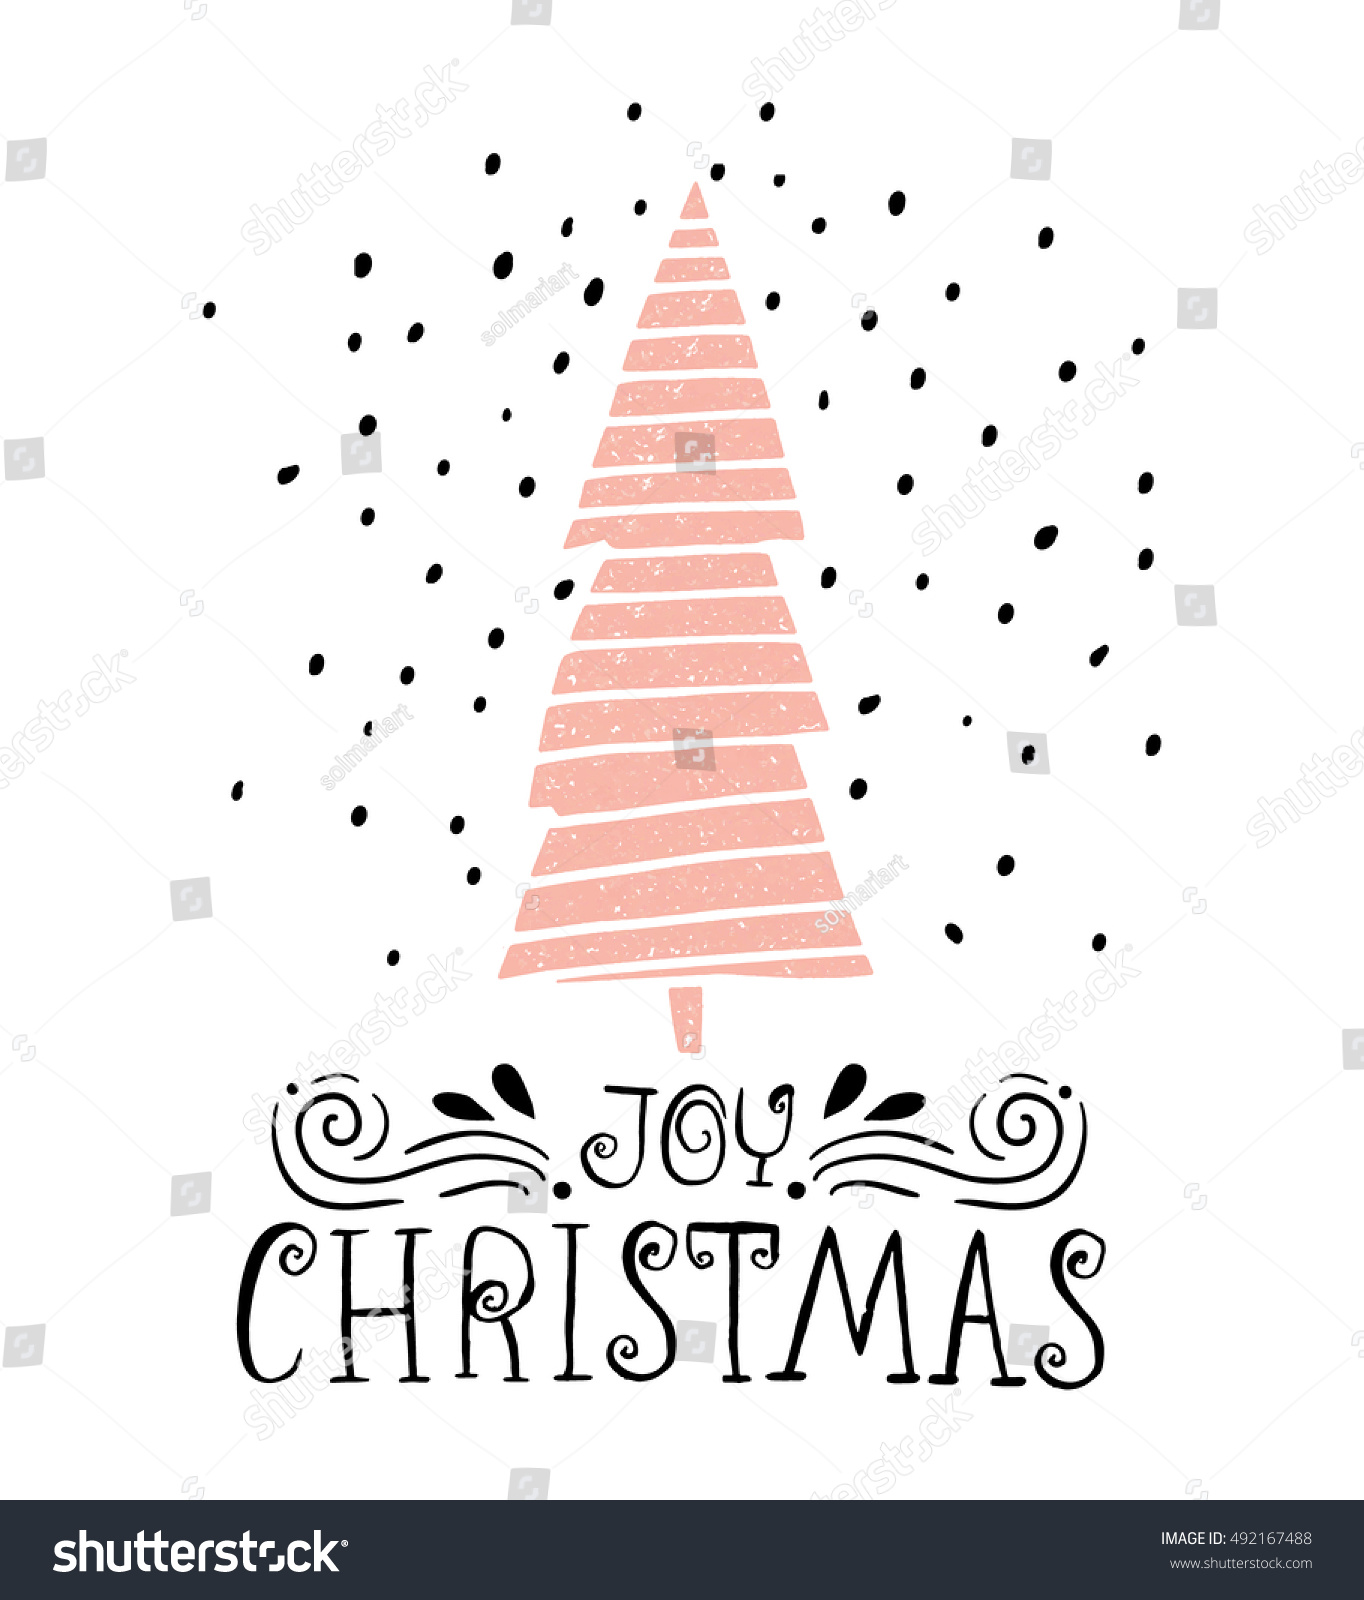 Joy christmas winter holiday saying hand stock vector royalty free joy christmas winter holiday saying hand drawn greeting card with handwritten lettering and christmas m4hsunfo